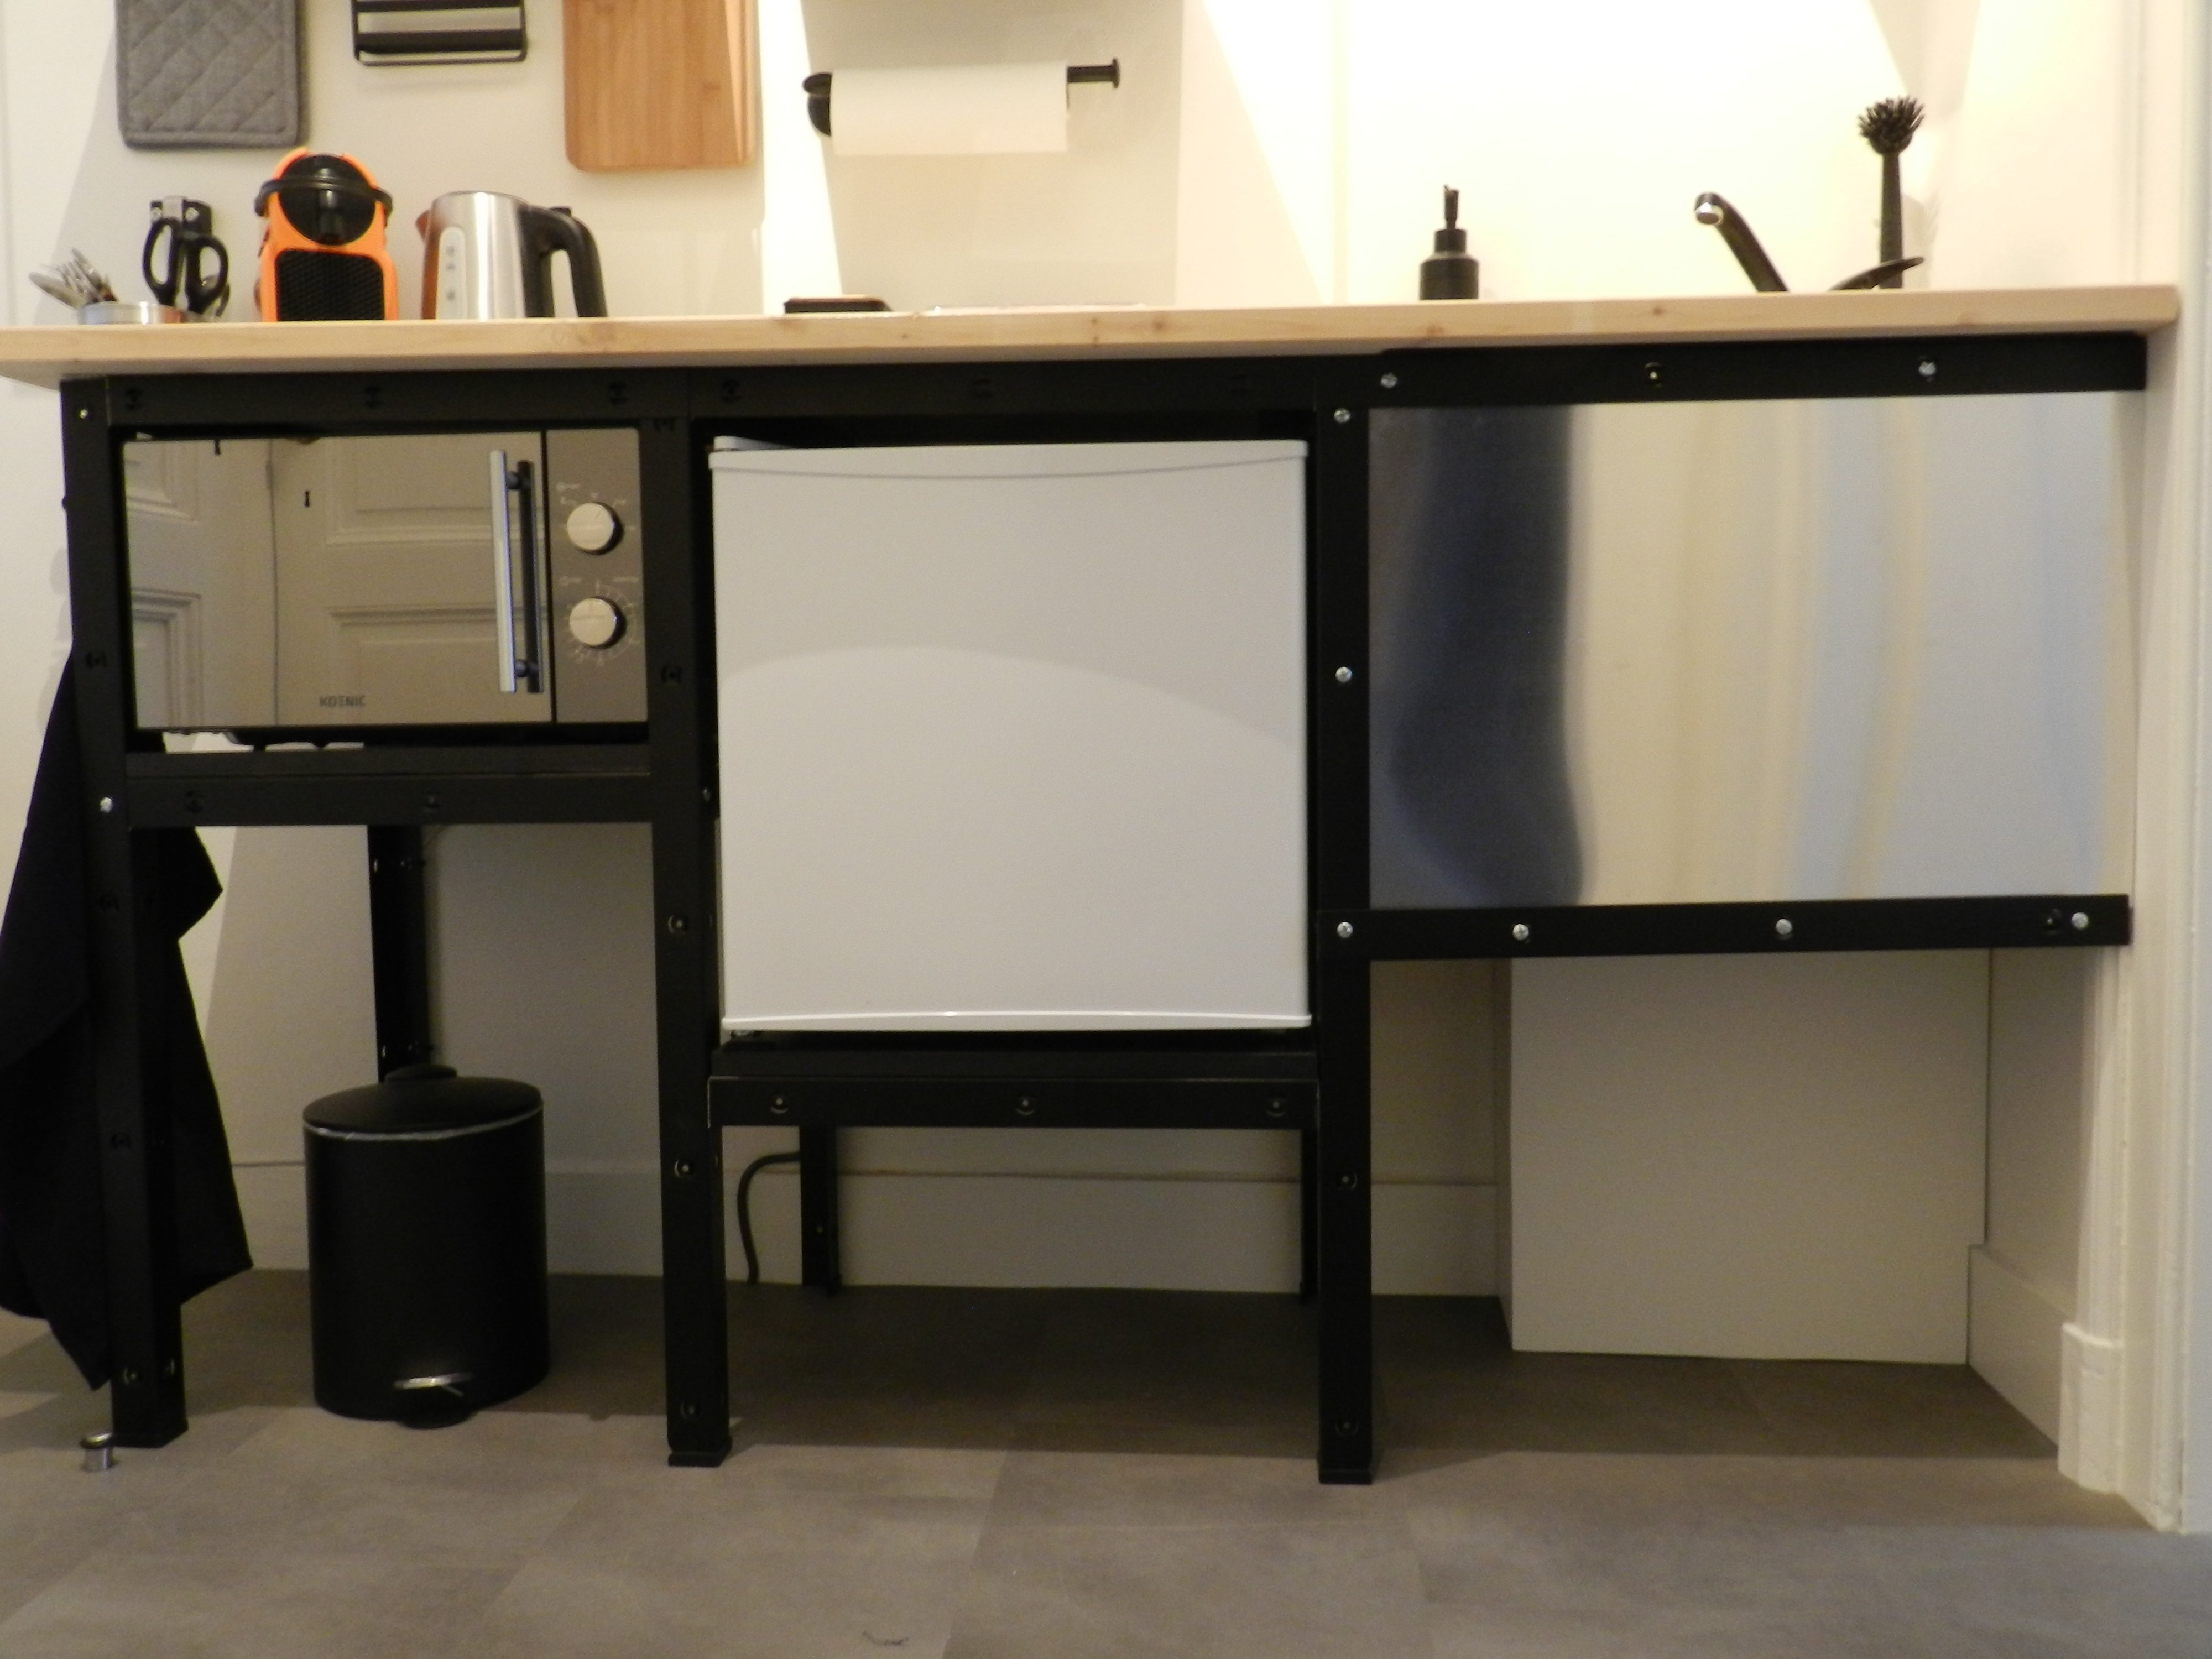 Kitchenette made with Ikea components